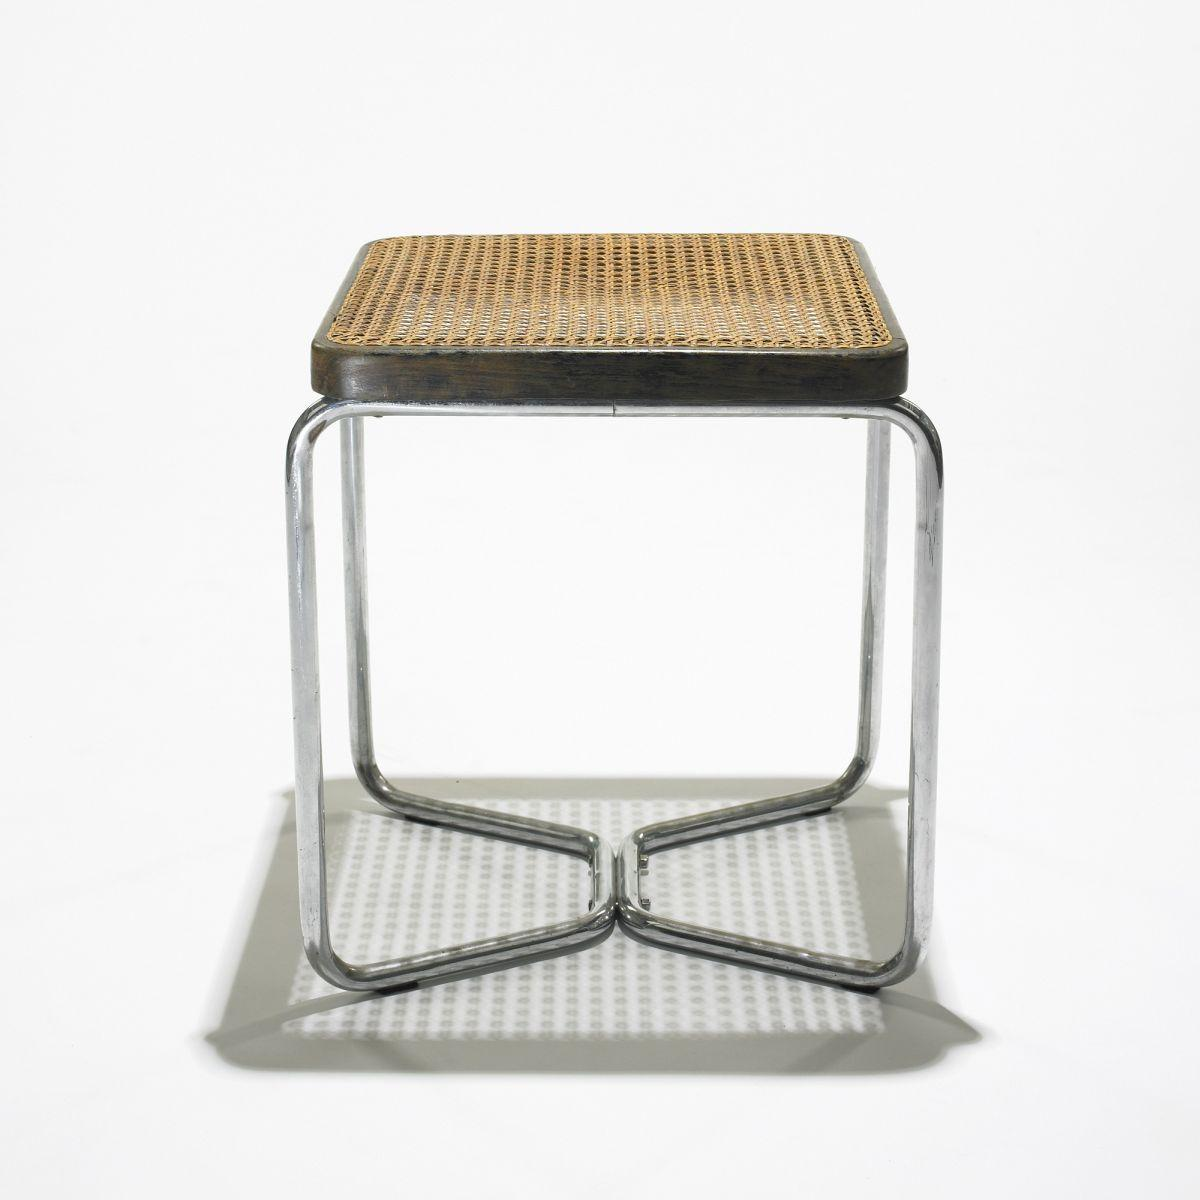 In The Manner Of Marcel Breuer Stool